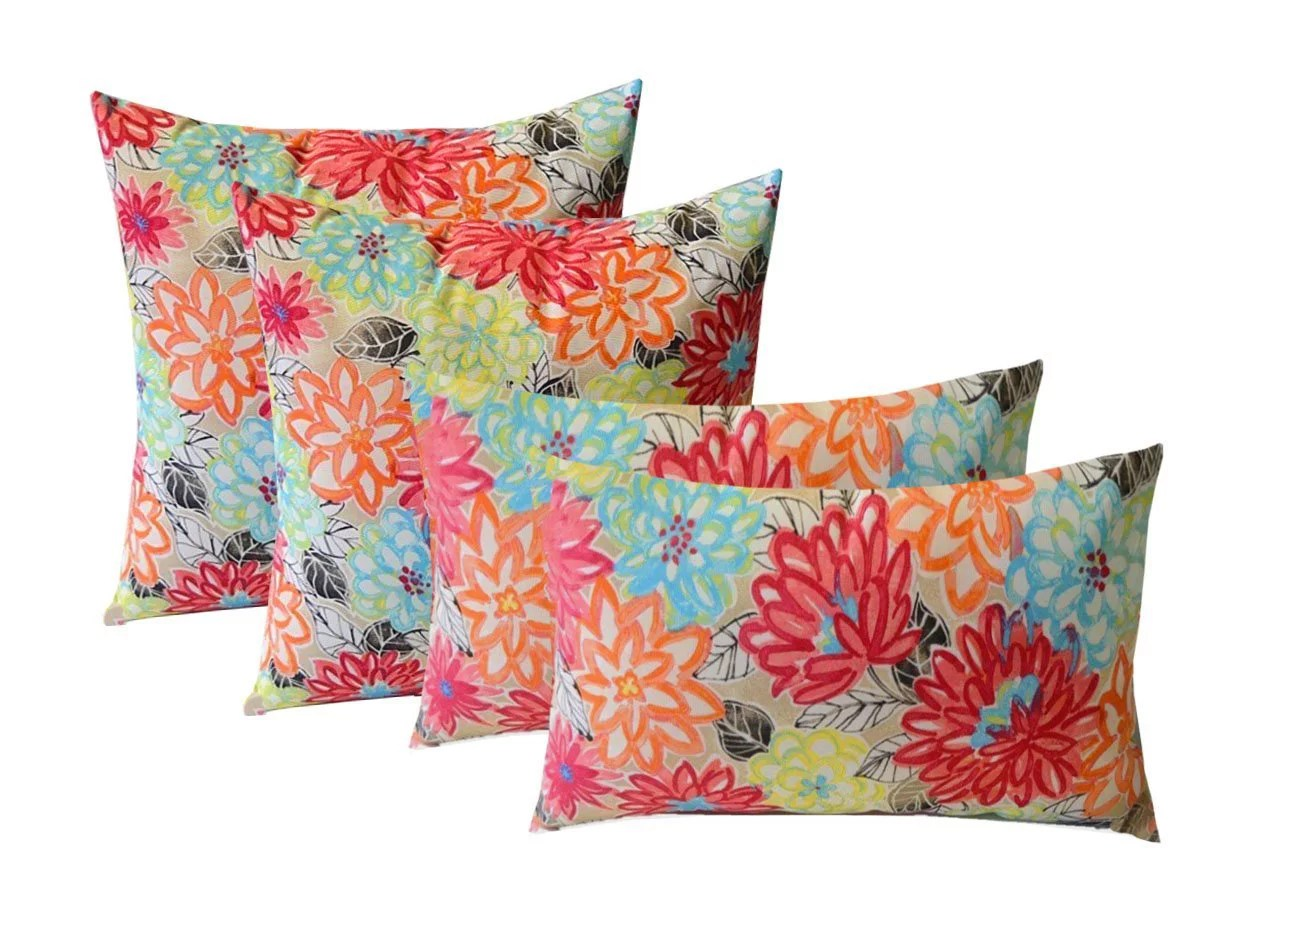 rsh decor indoor outdoor set of 4 square throw pillows weather resistant 17 x 17 and 20 x 12 pink yellow orange blue artistic floral